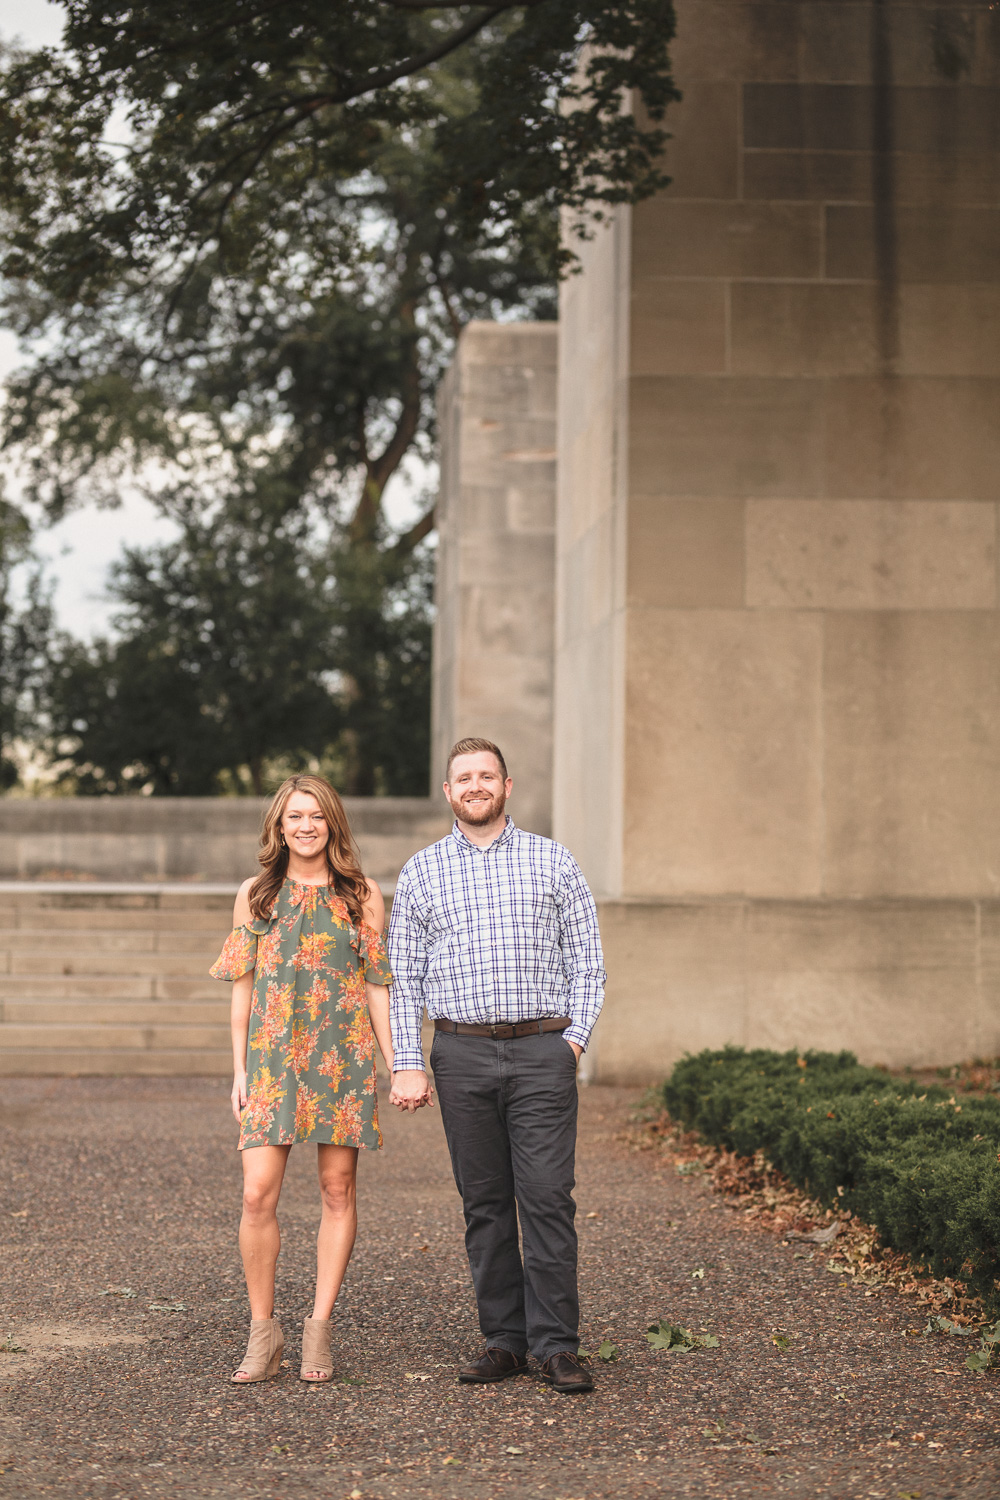 Urban_KC_Engagement_Anthony_Rachel_Kelsey_Diane_Photography_1-9256.jpg